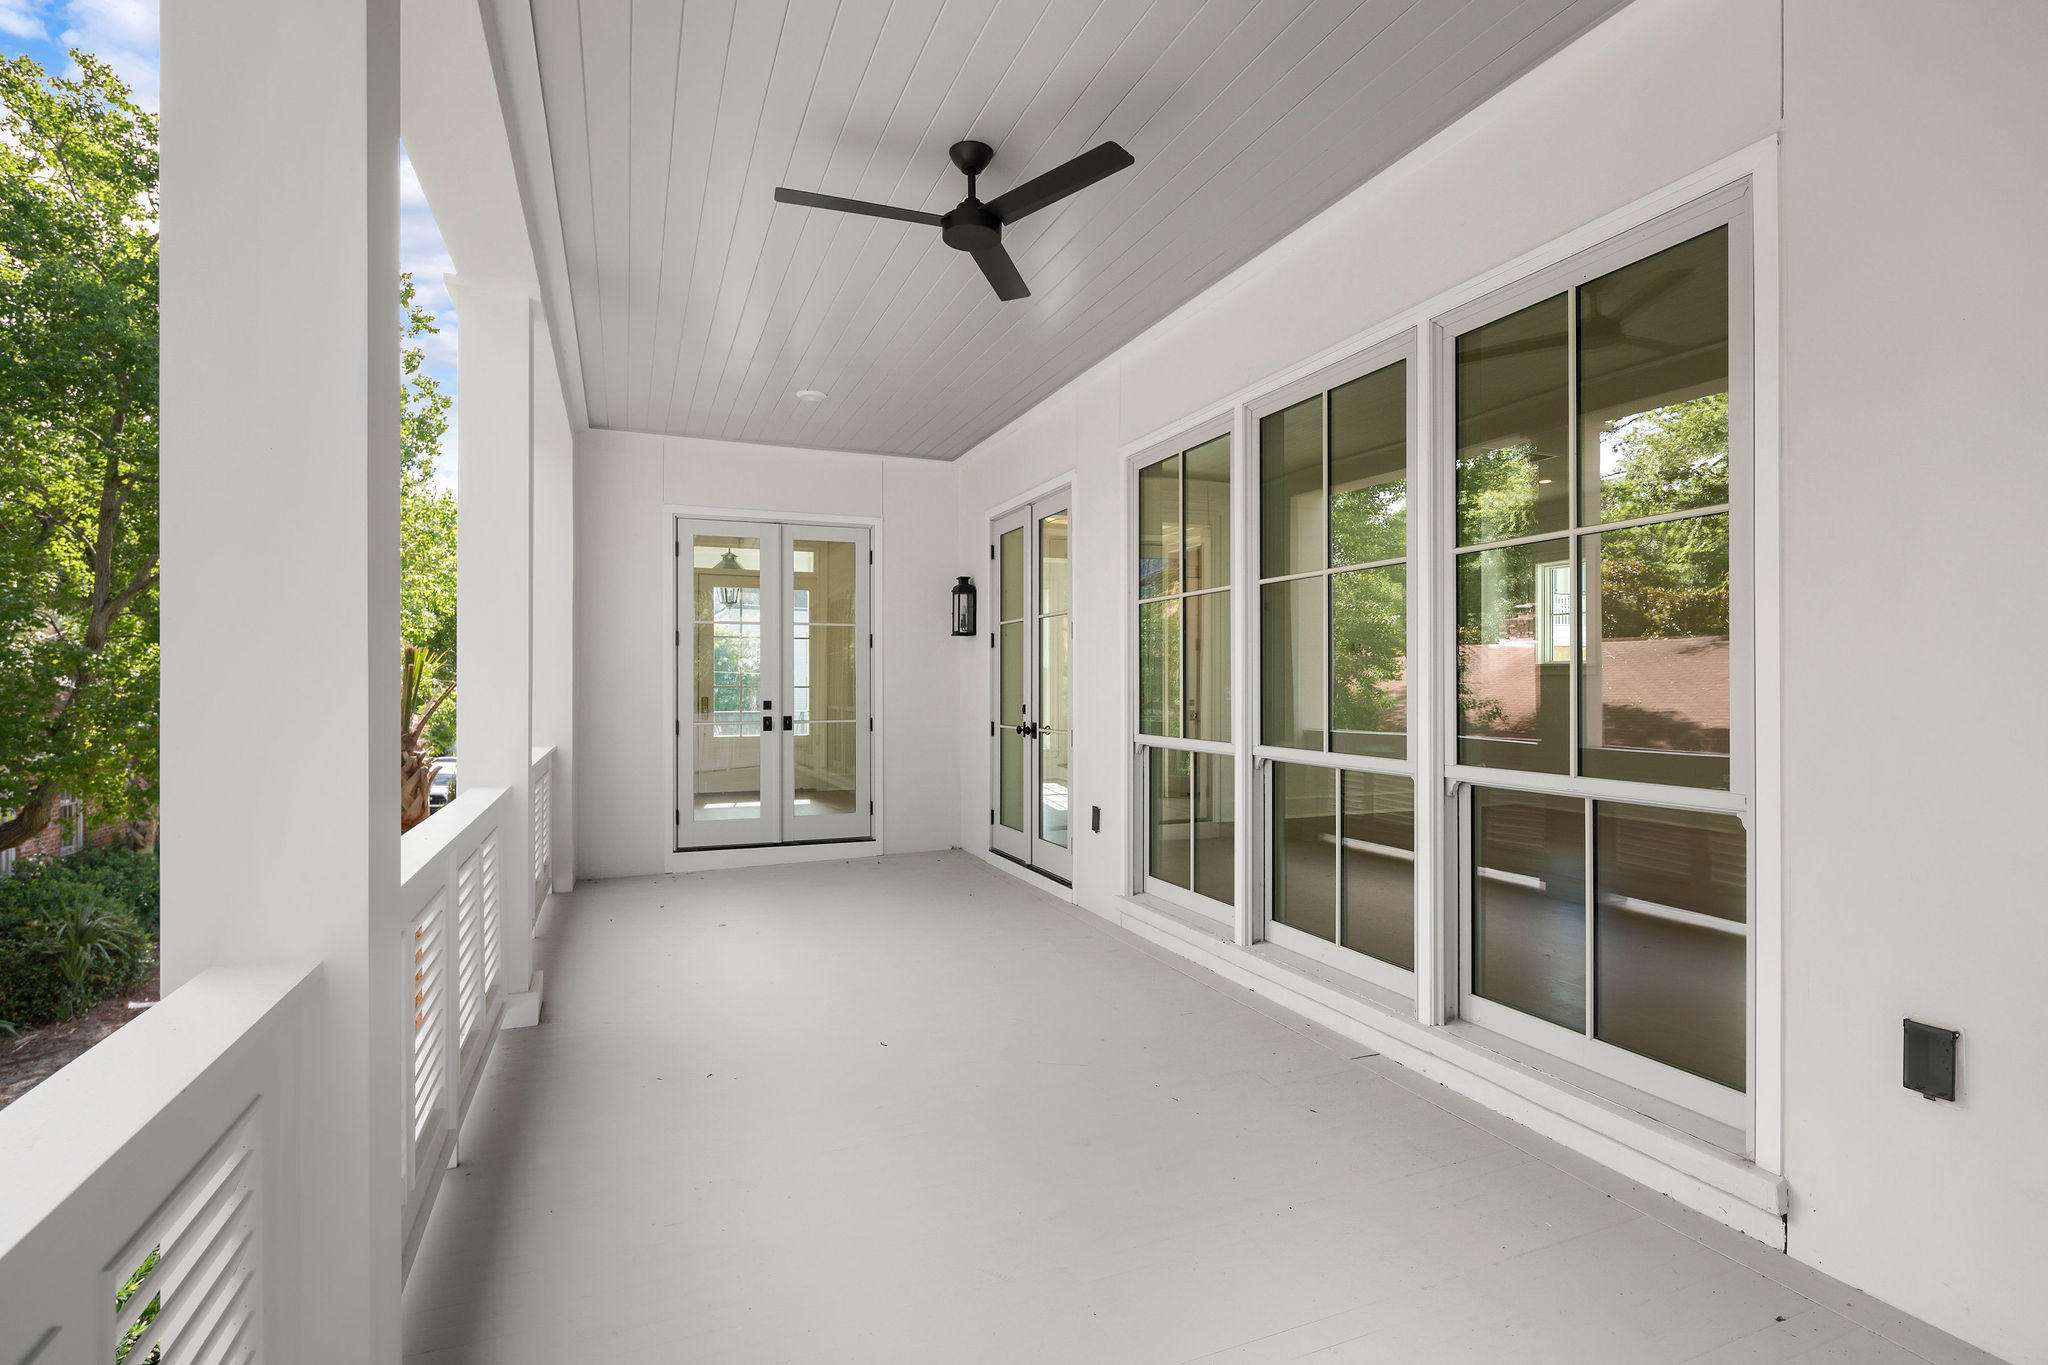 Harleston Village Condos For Sale - 61 B Barre, Charleston, SC - 30